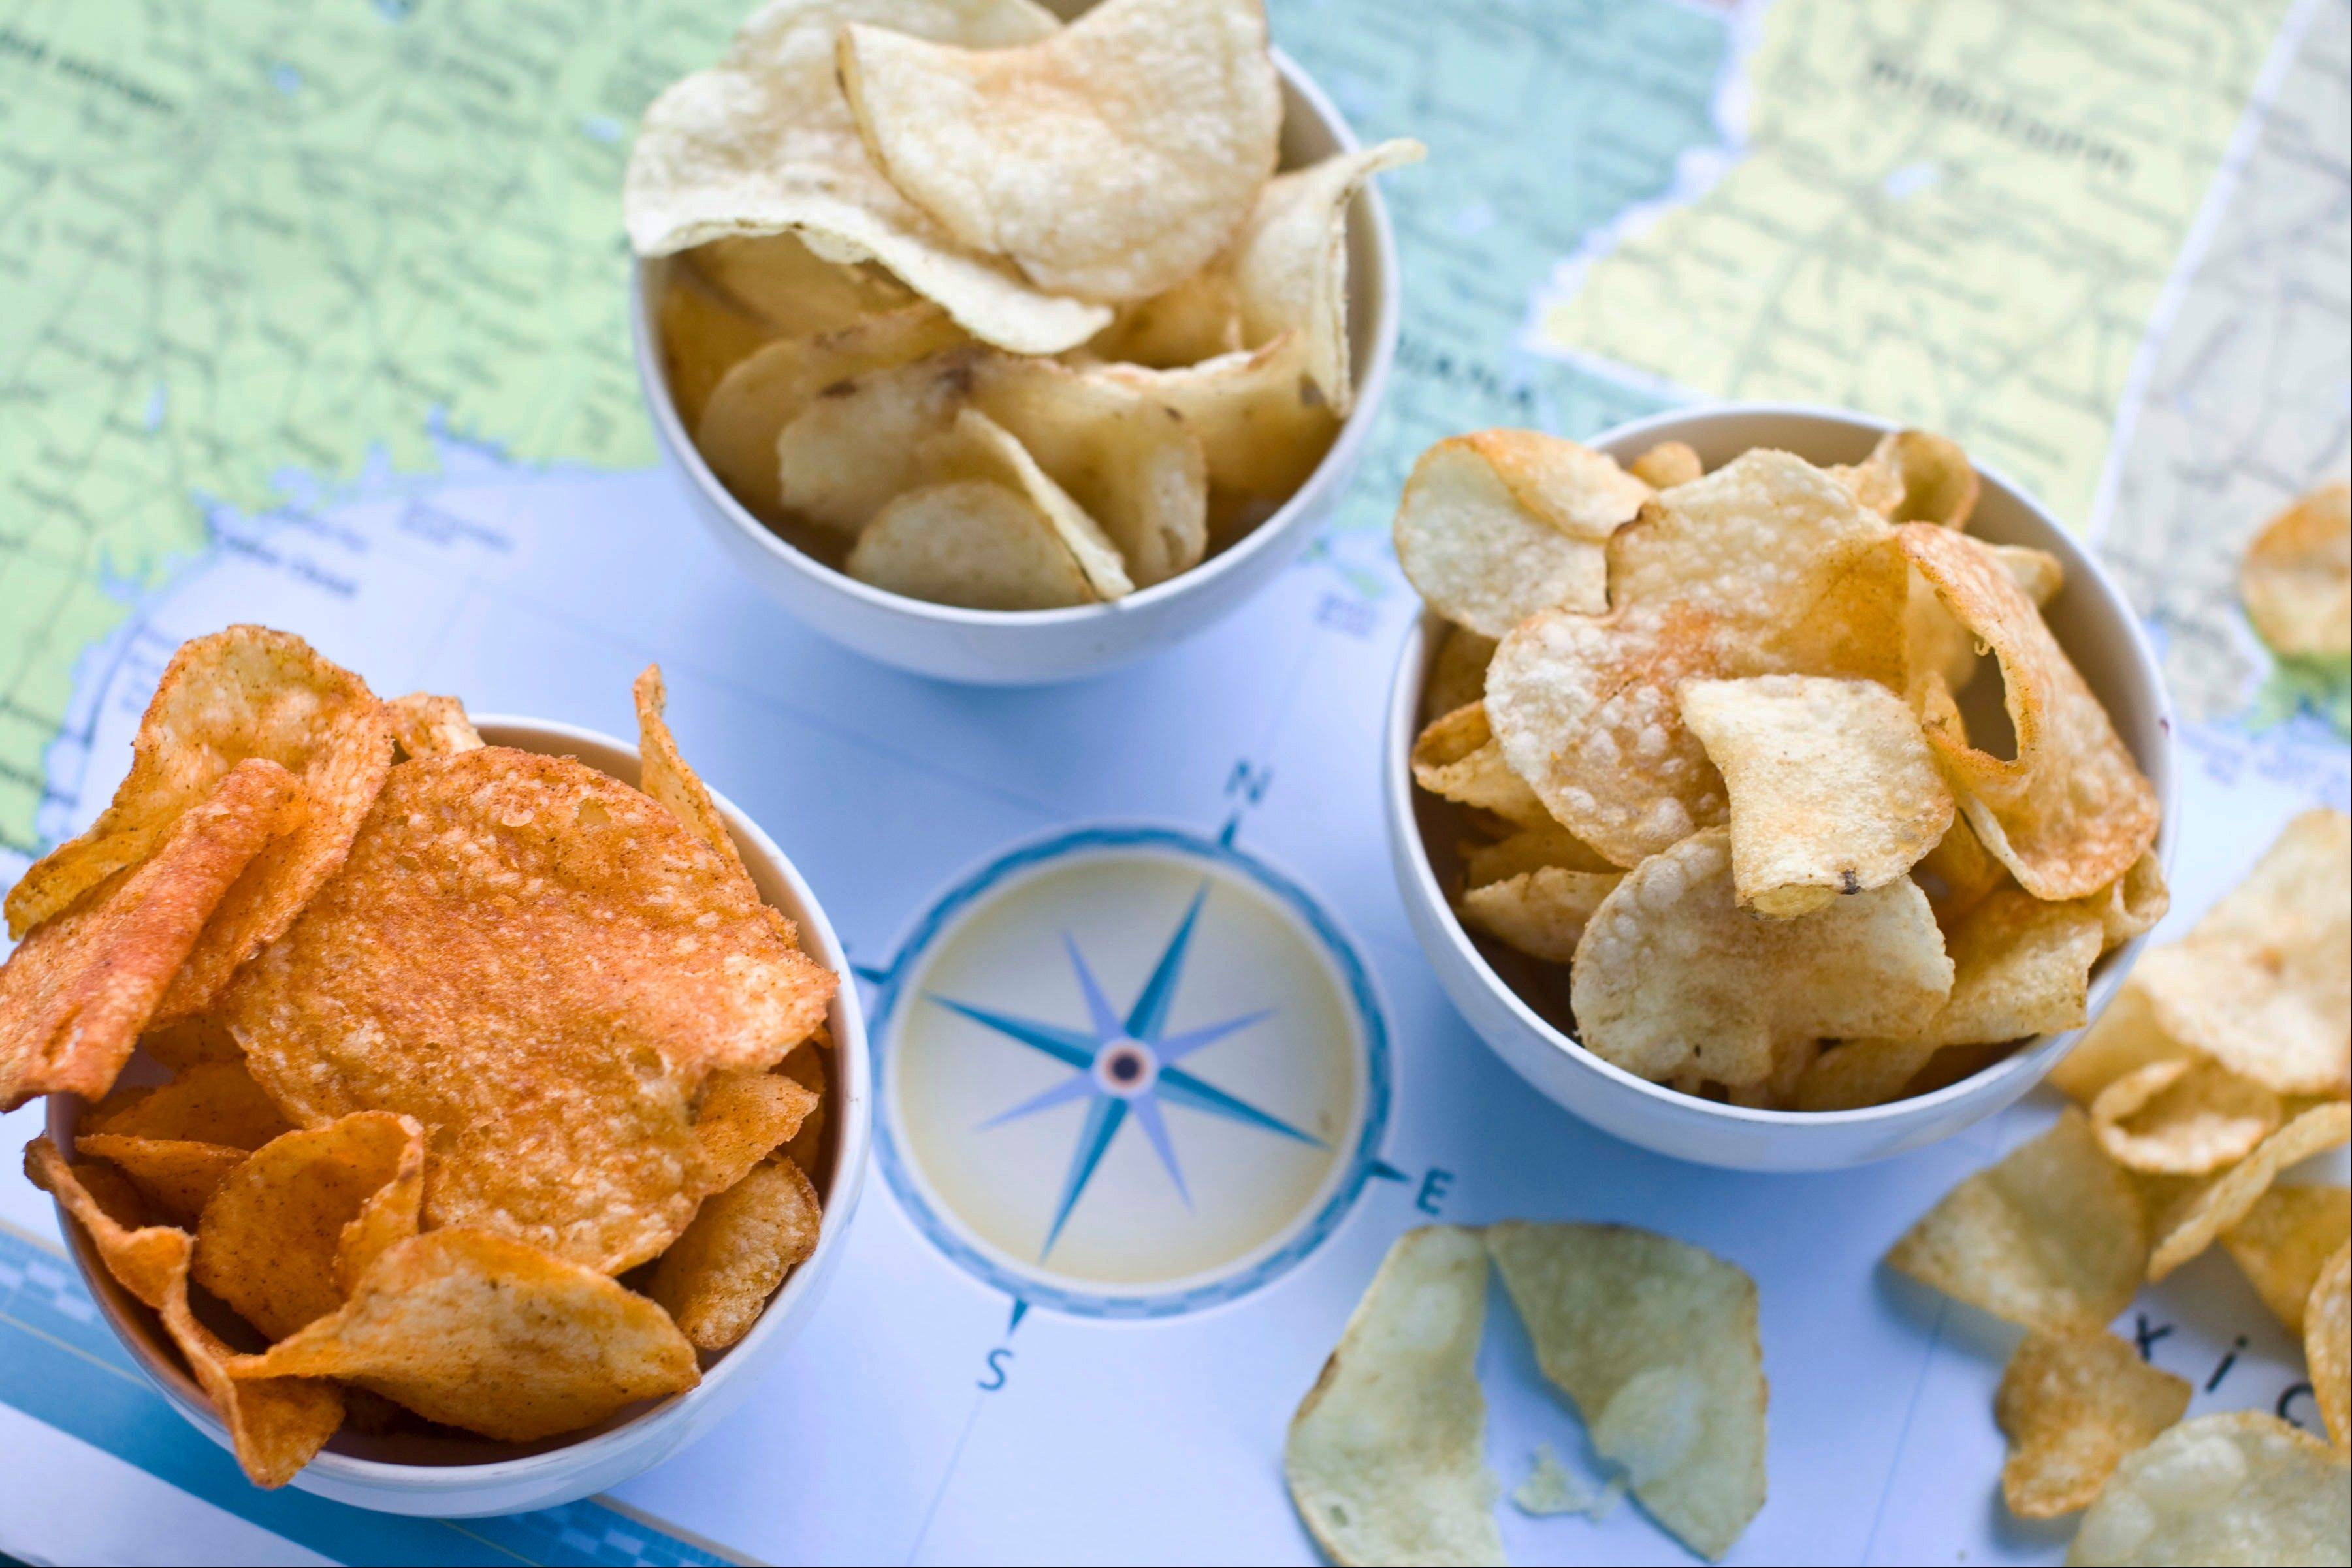 Poore Brother's Habanero, from left, Route 11 Chips Chesapeake Crab, and Boulder Canyons Red Wine Vinegar, potato chips are shown in Concord, N.H.